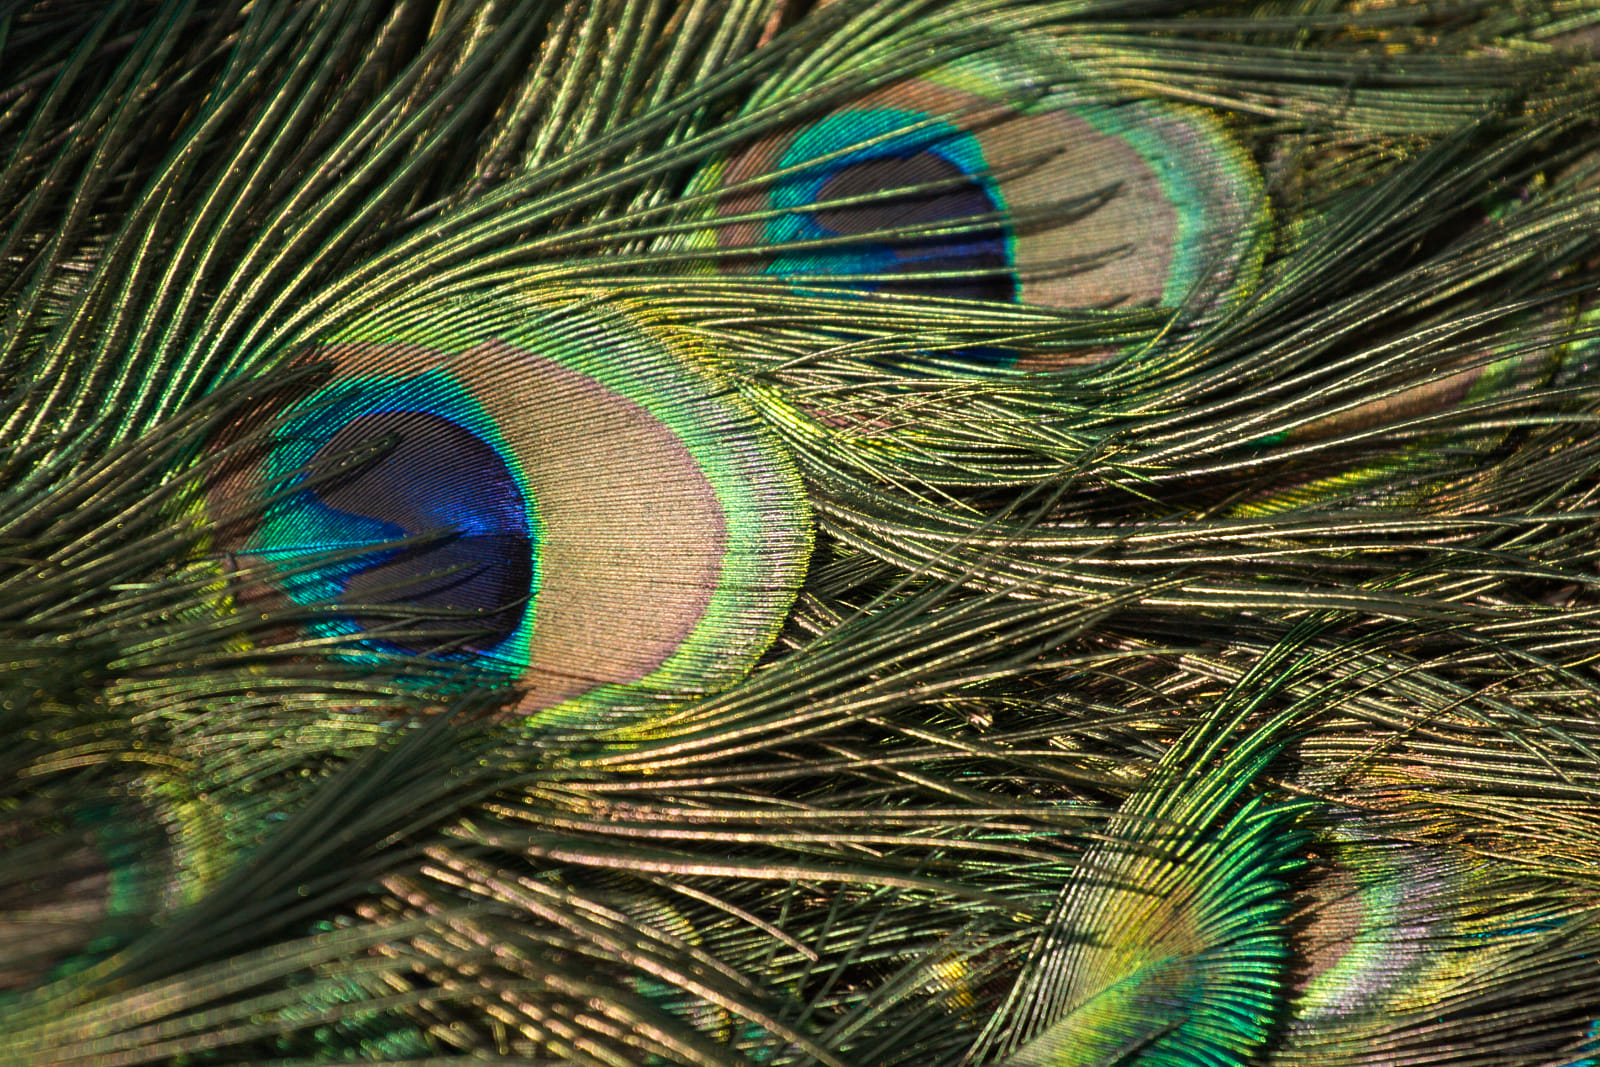 Indian peafowls plumage